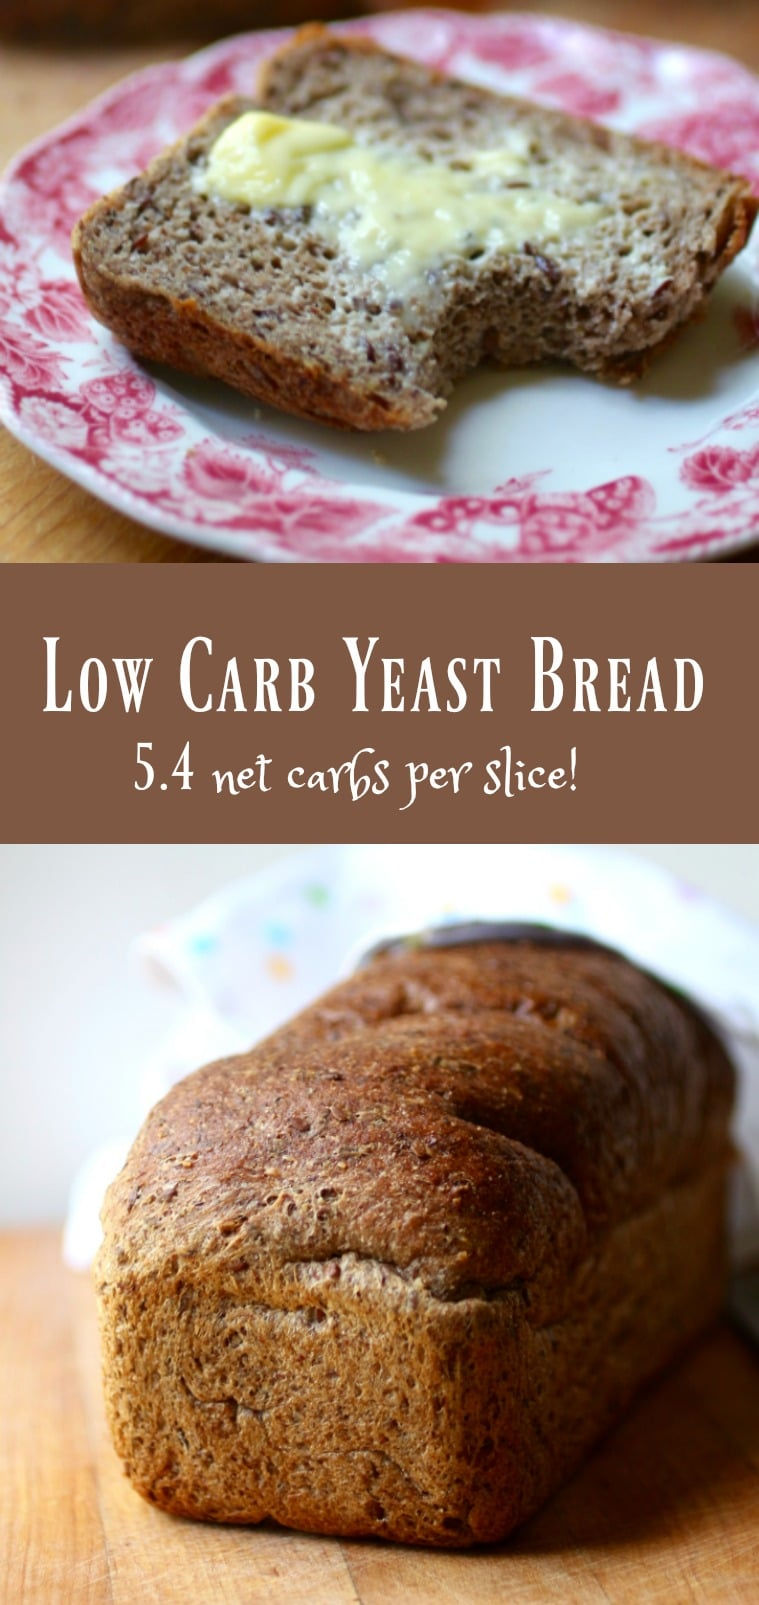 Low Carb Yeast Bread: Keto Sandwich Bread - lowcarb-ology